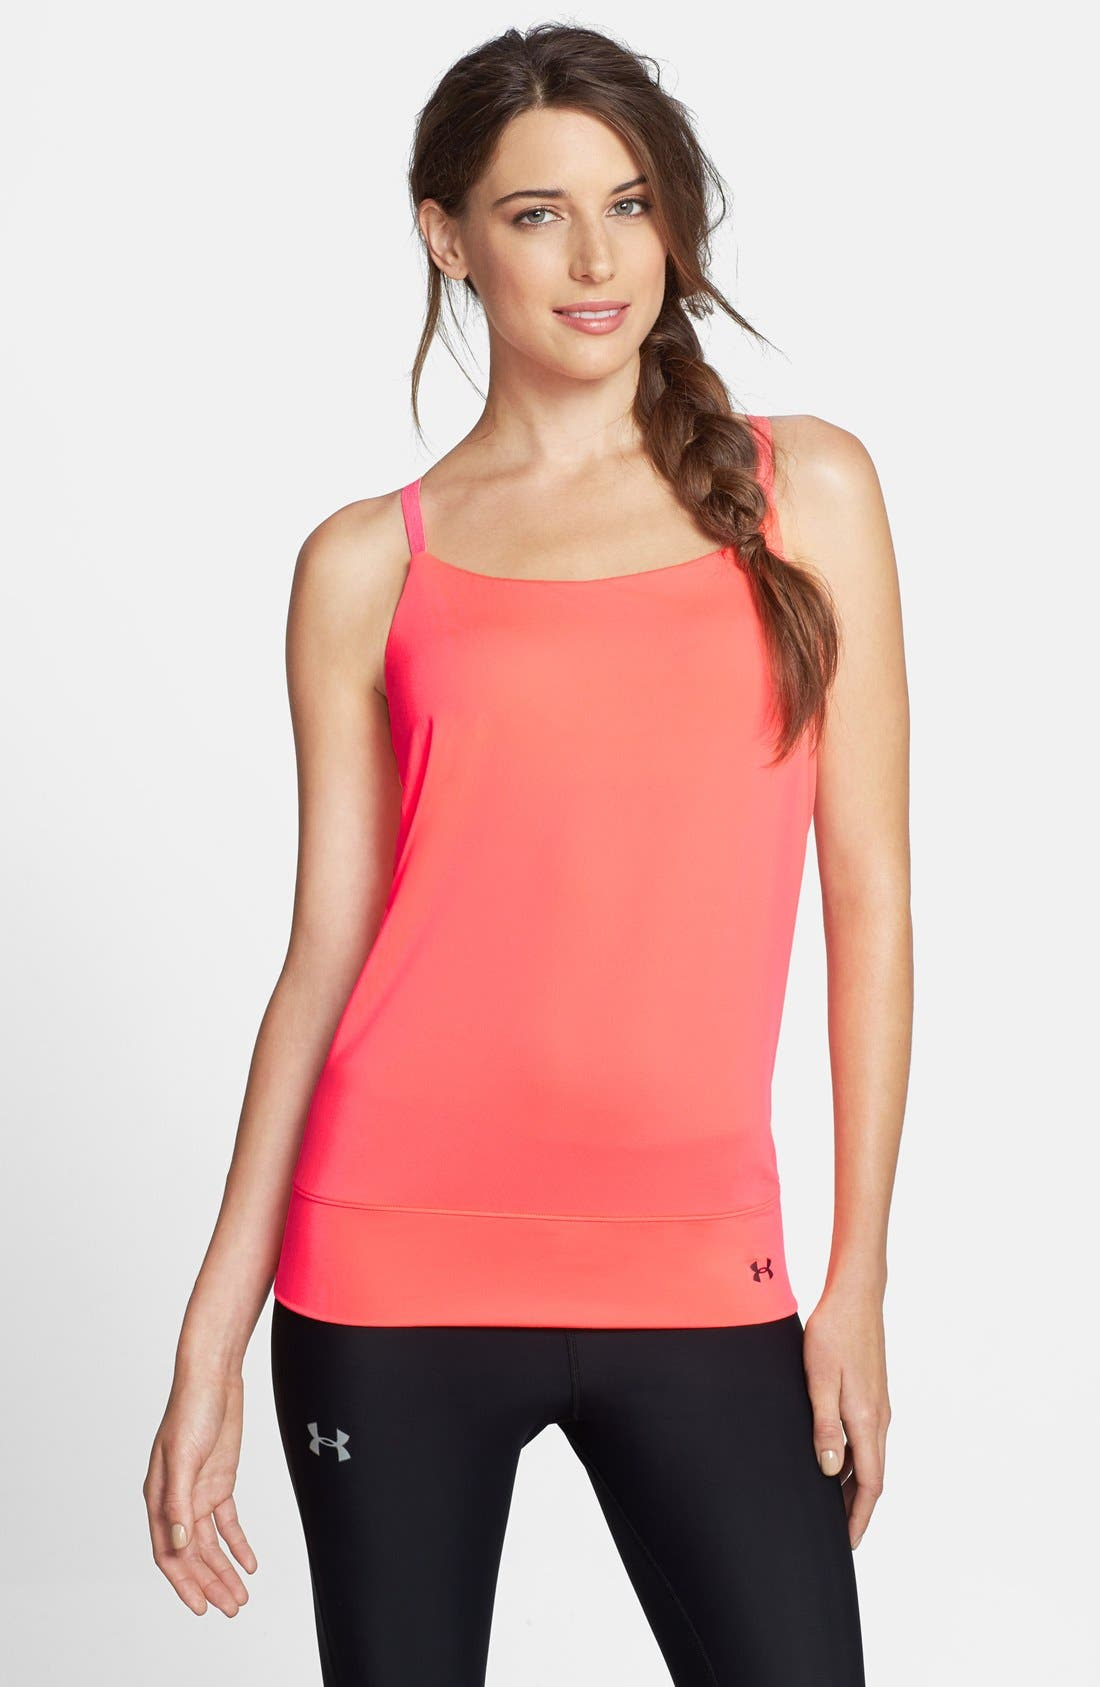 Alternate Image 1 Selected - Under Armour 'Essential' Cutout Back Tank